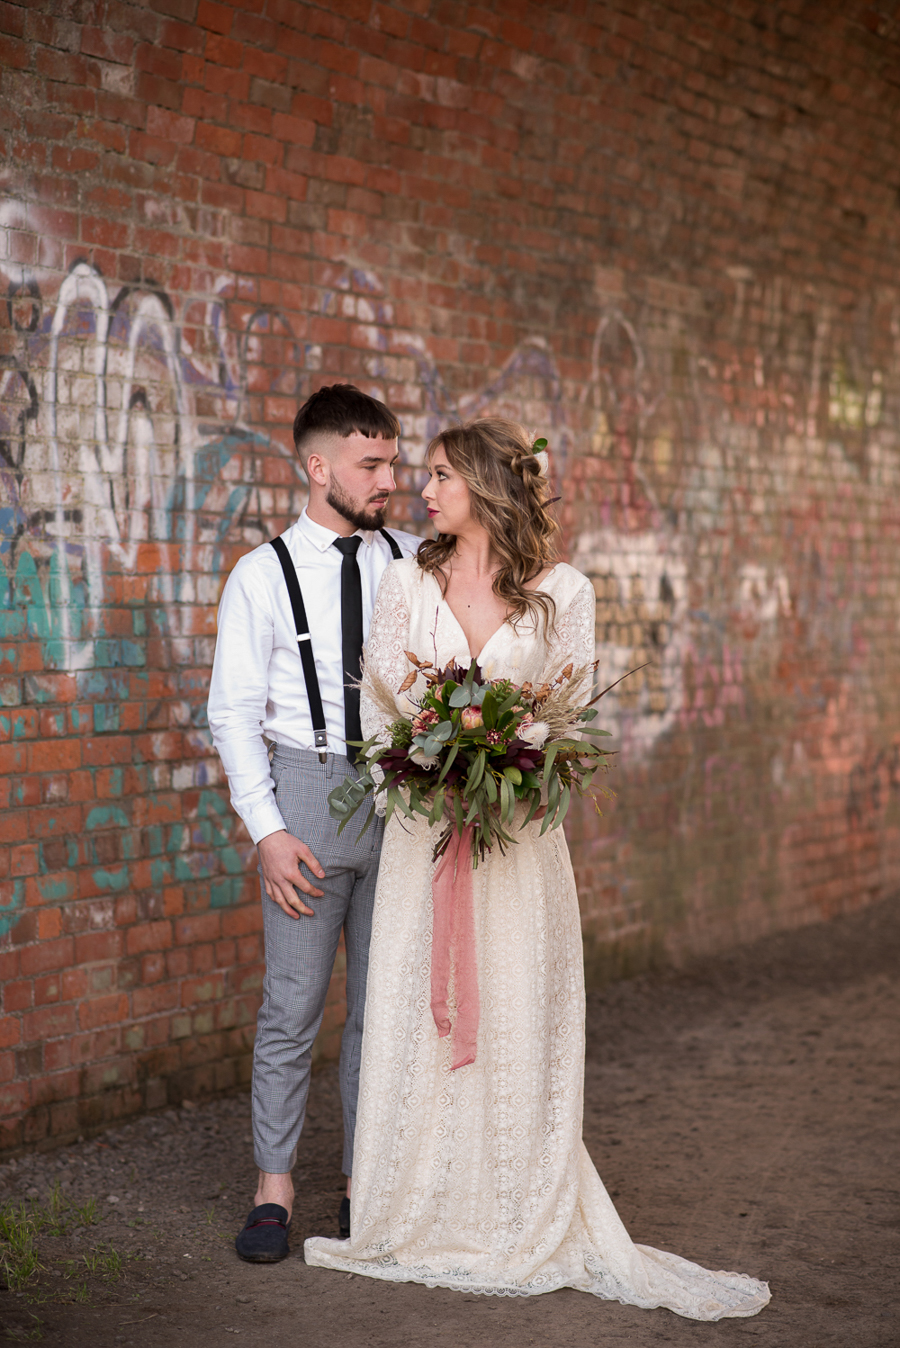 See you at Sunset - a warm autumnal wedding photoshoot with Nicola Belson Photography (40)